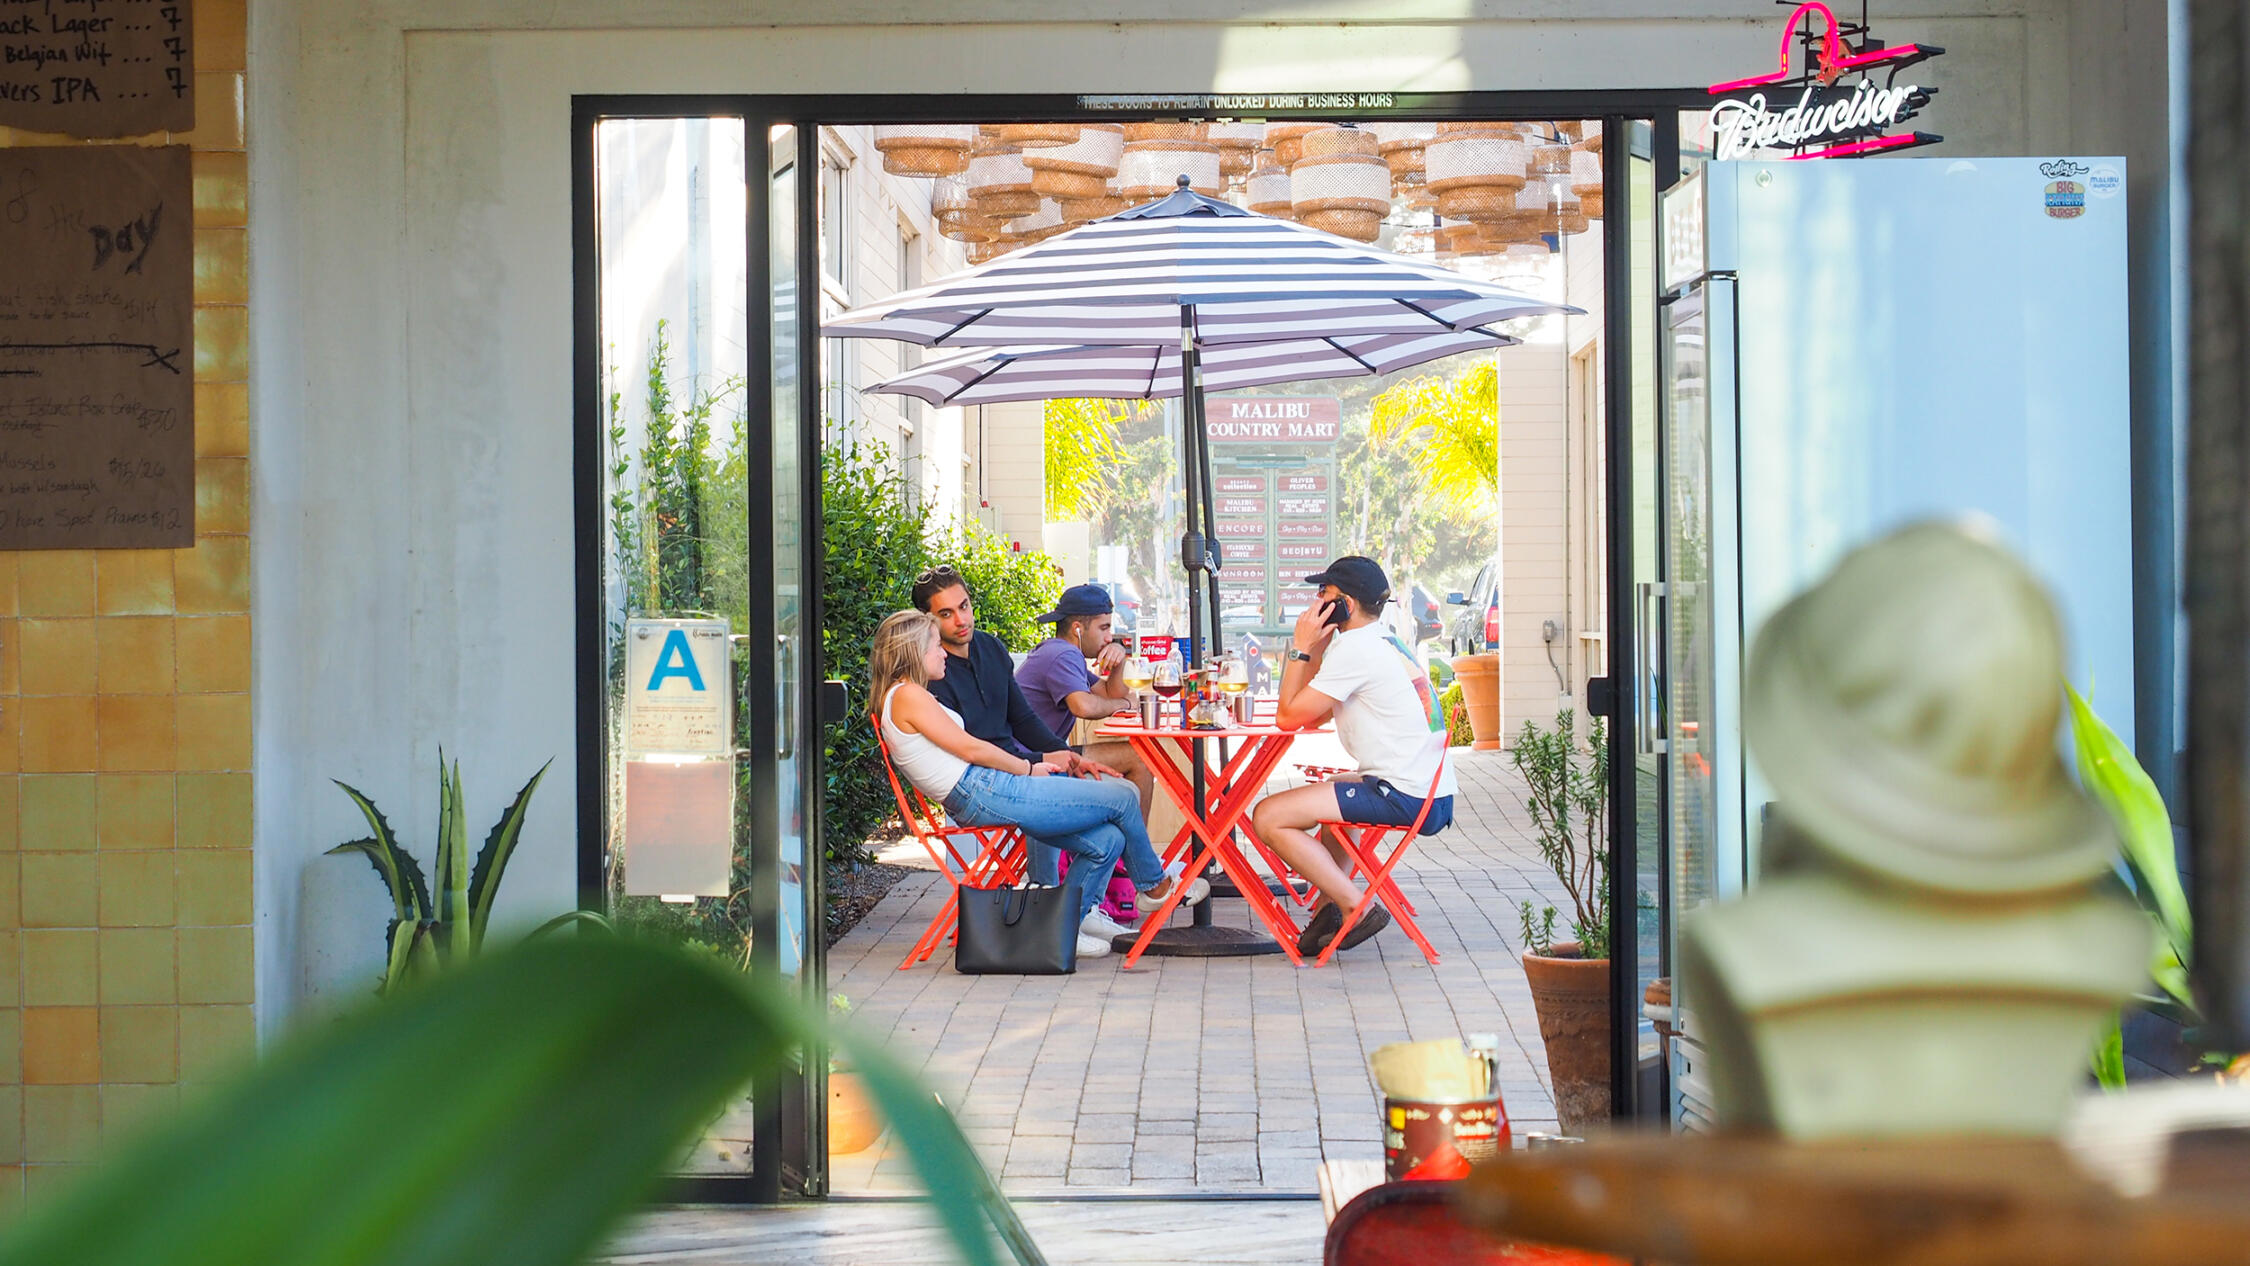 People dining at a patio cafe